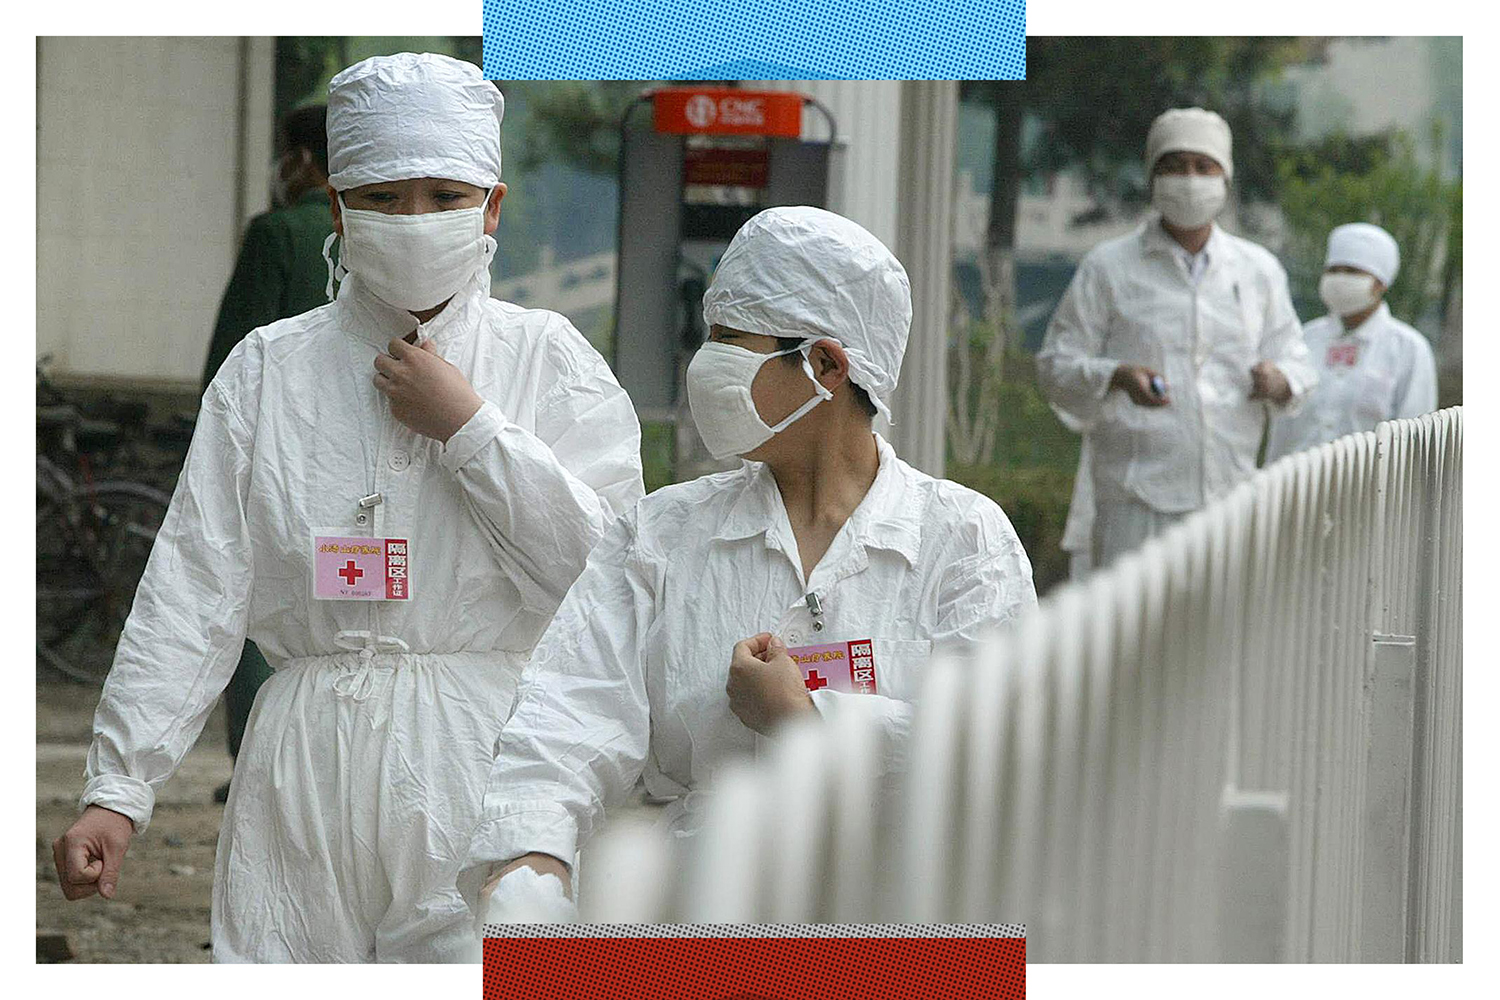 Nurses walk behind a barricade at the quarantined Severe Acute Respiratory Syndrome (SARS) facility of Xiaotangshan hospital on the outskirts of Beijing on May 7, 2003.